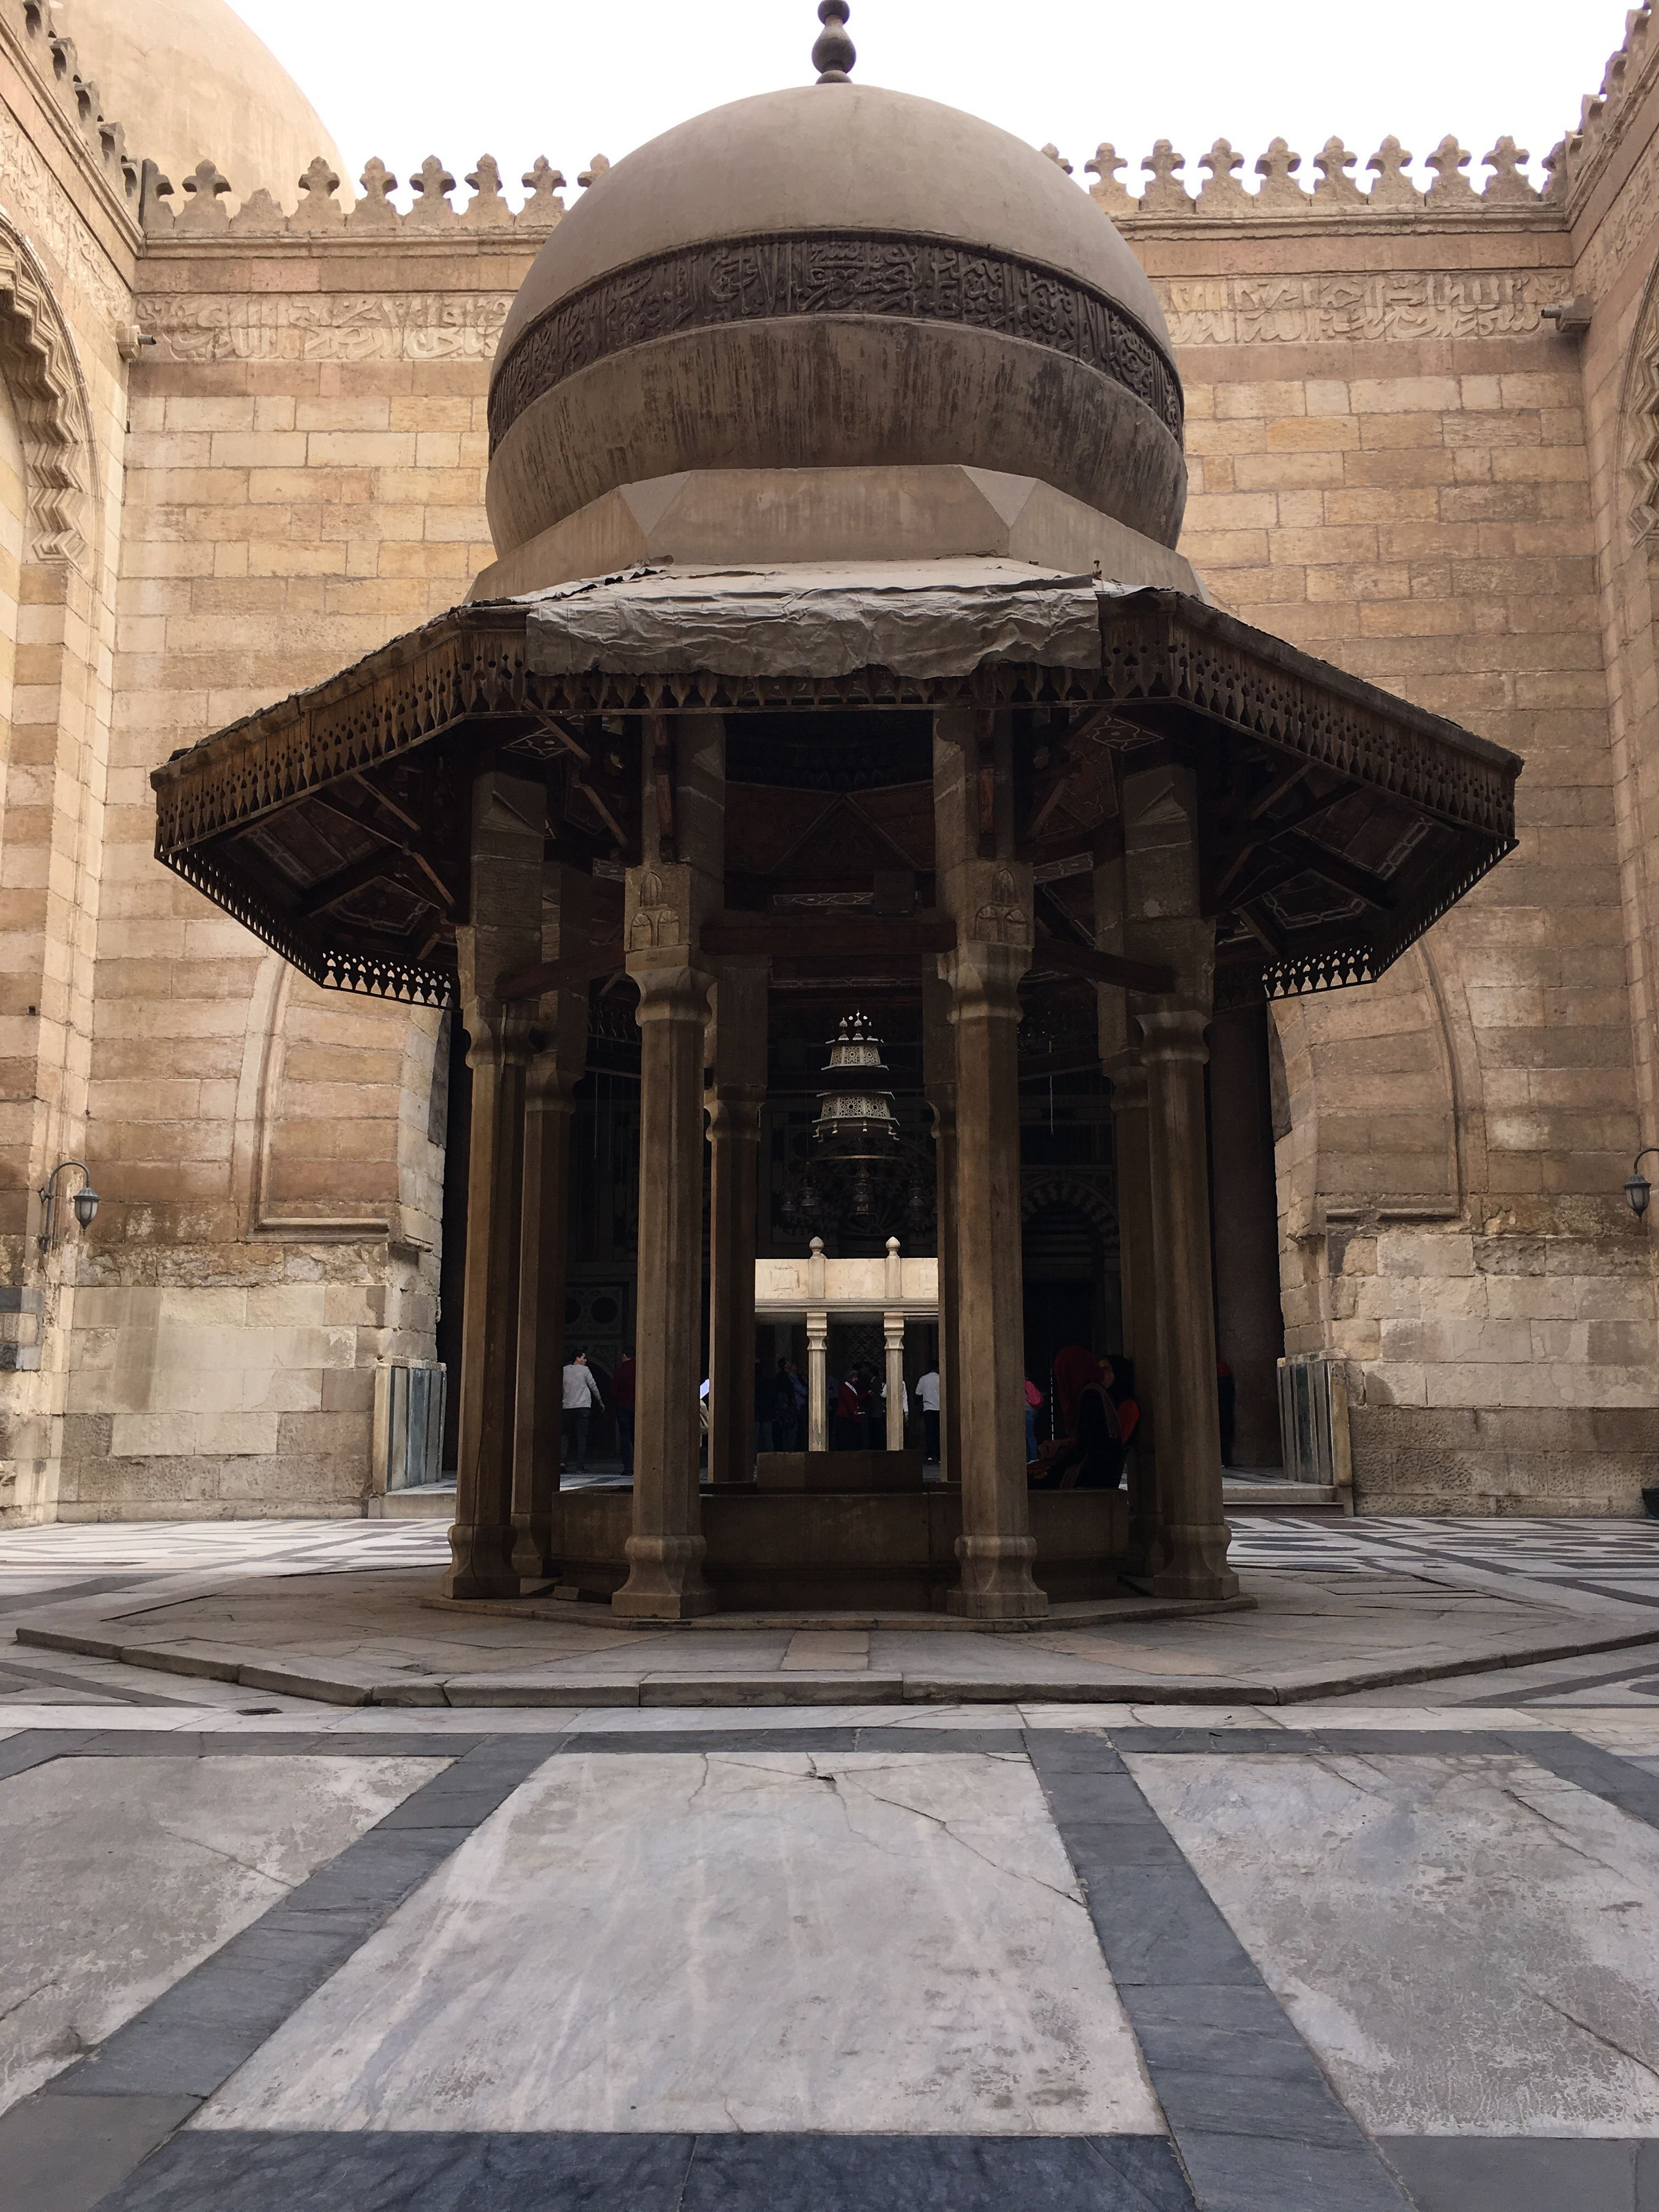 architecture, built structure, building exterior, history, travel destinations, dome, day, architectural column, outdoors, low angle view, no people, spirituality, place of worship, city, ancient civilization, sky